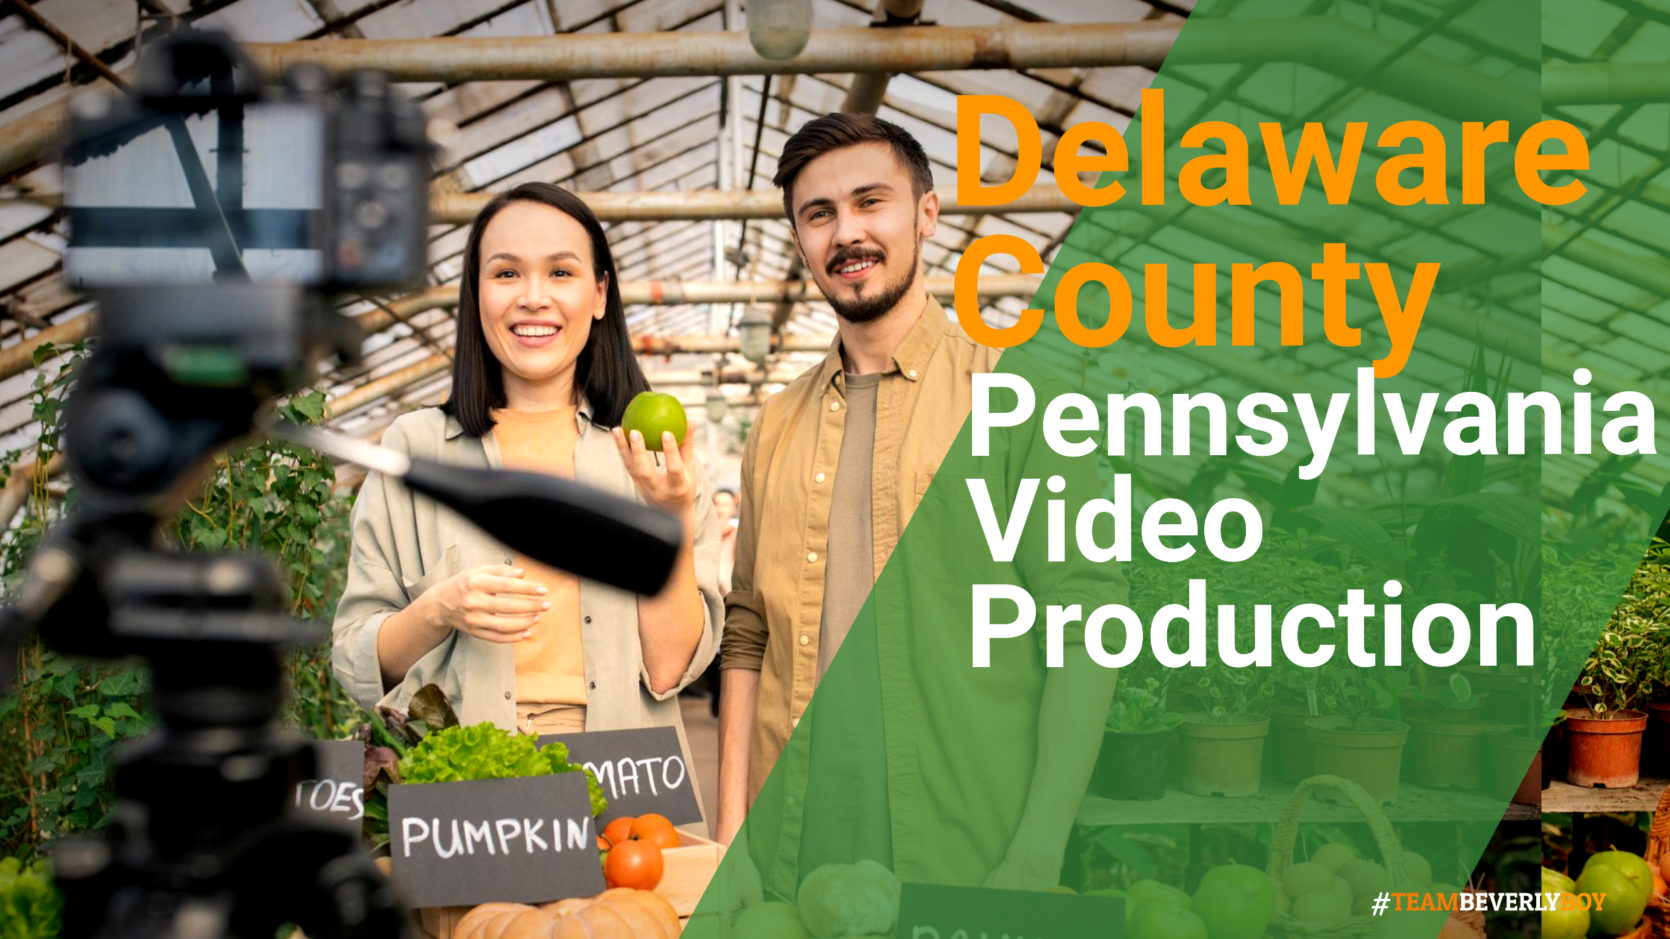 Delaware County, PA Video Production